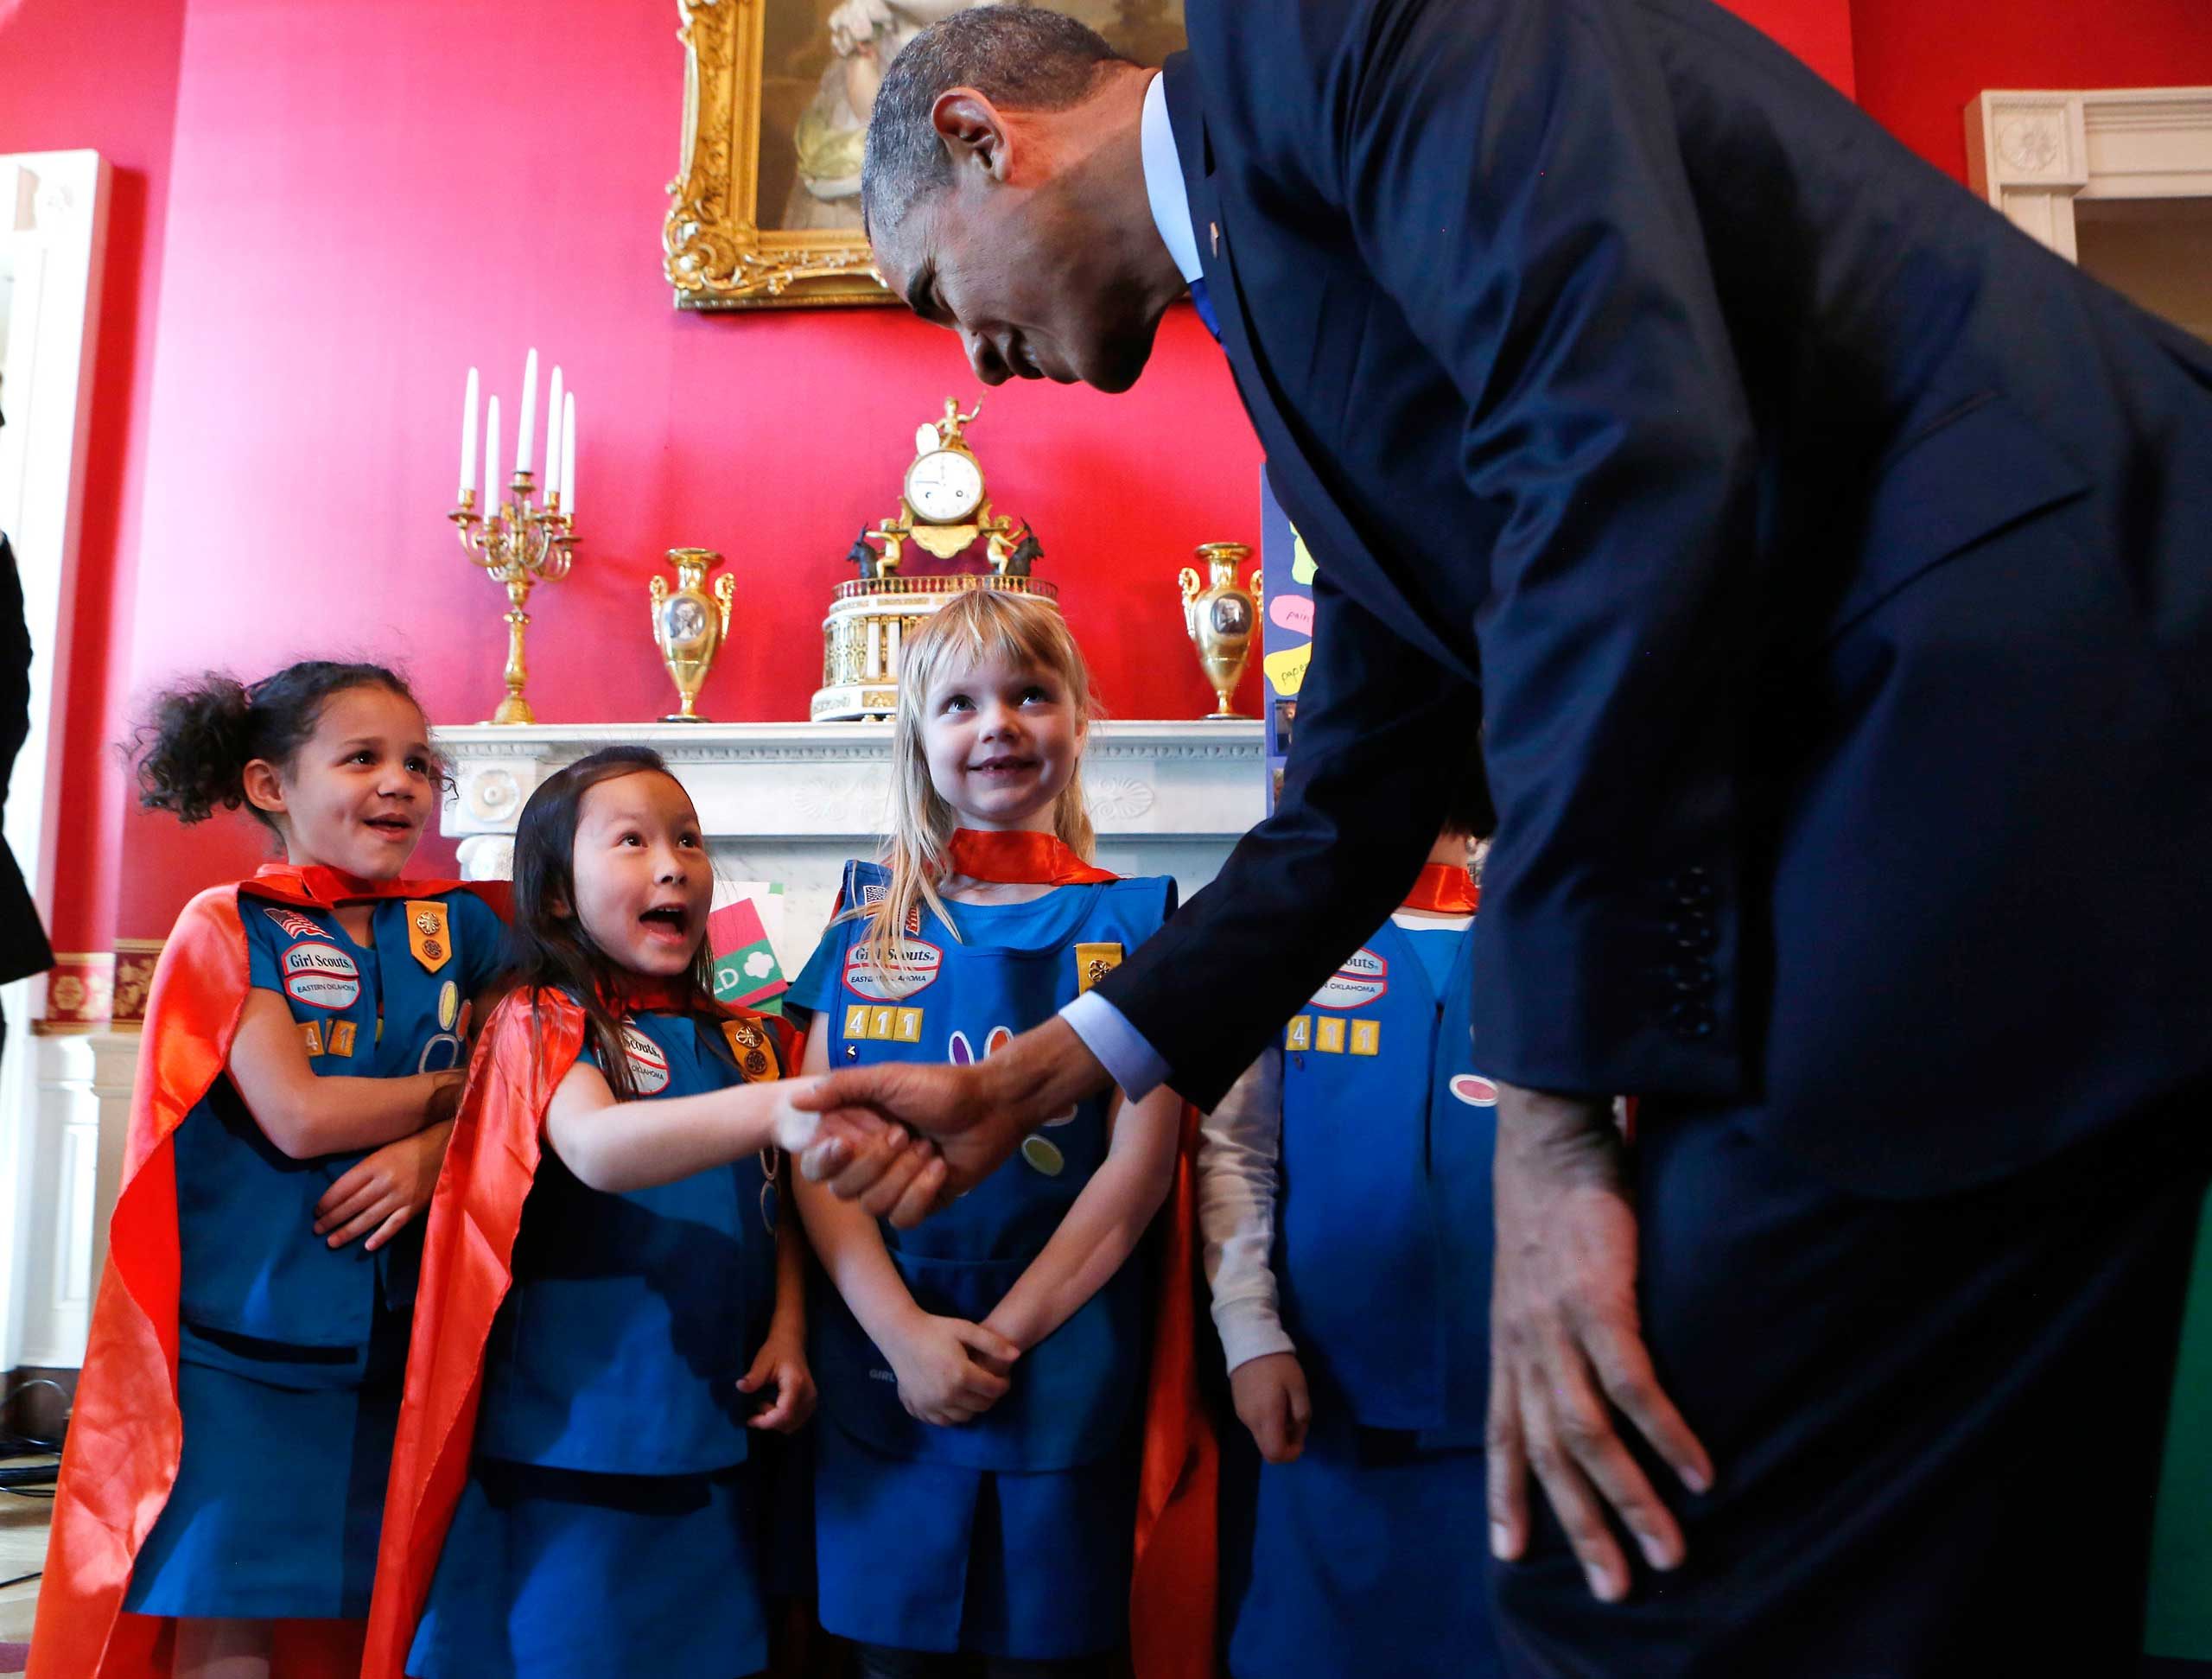 U.S. President Barack Obama (R) shakes hands with a group of  six-year-old Girls Scouts from Tulsa Oklahoma who designed a battery powered page turner to help people who are paralyzed or have arthritis at the 2015 White House Science Fair in Washington on March 23, 2015.